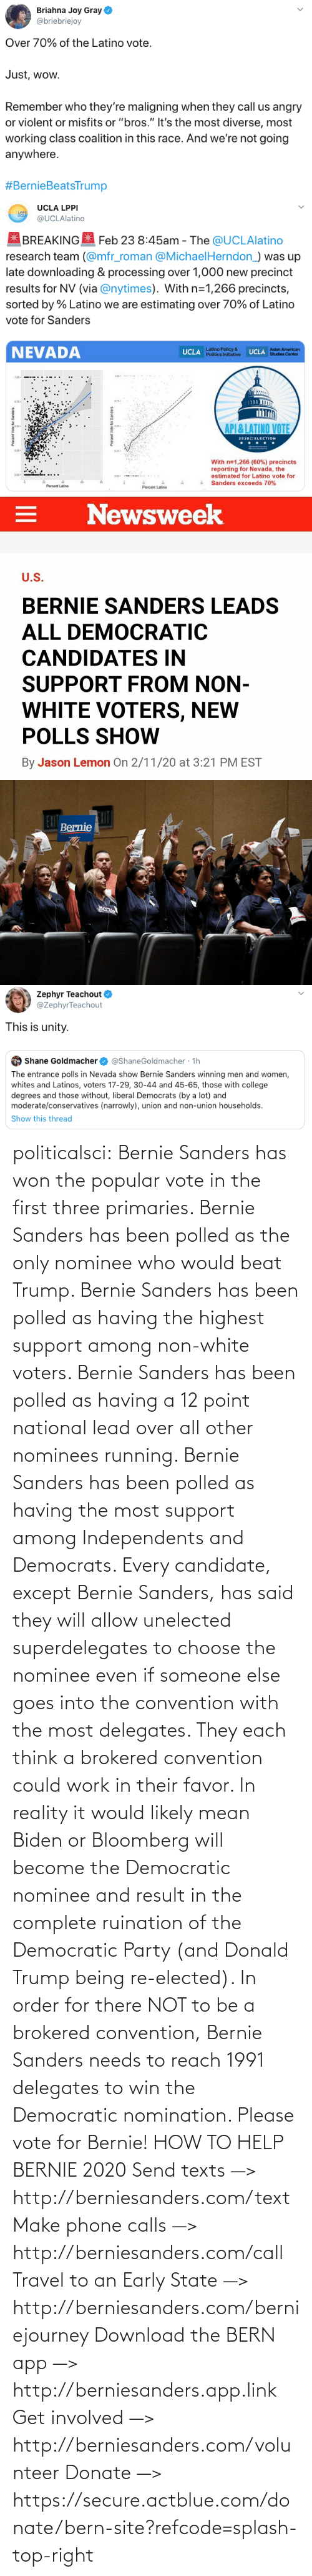 download: politicalsci: Bernie Sanders has won the popular vote in the first three primaries. Bernie Sanders has  been polled as the only nominee who would beat Trump. Bernie Sanders  has been polled as having the highest support among non-white voters.  Bernie Sanders has been polled as having a 12 point national lead over  all other nominees running. Bernie Sanders has been polled as having the most support among Independents and Democrats.  Every candidate, except Bernie Sanders, has said they will allow  unelected superdelegates to choose the nominee even if someone else goes  into the convention with the most delegates. They each think a brokered  convention could work in their favor. In  reality it would likely mean Biden or Bloomberg will become the  Democratic nominee and result in the complete ruination of the  Democratic Party (and Donald Trump being re-elected). In order for there  NOT to be a brokered  convention, Bernie Sanders needs to reach 1991 delegates to win the  Democratic  nomination. Please vote for Bernie!  HOW TO HELP BERNIE 2020 Send texts —> http://berniesanders.com/text  Make phone calls —> http://berniesanders.com/call  Travel to an Early State —> http://berniesanders.com/berniejourney  Download the BERN app —> http://berniesanders.app.link  Get involved —> http://berniesanders.com/volunteer Donate —> https://secure.actblue.com/donate/bern-site?refcode=splash-top-right